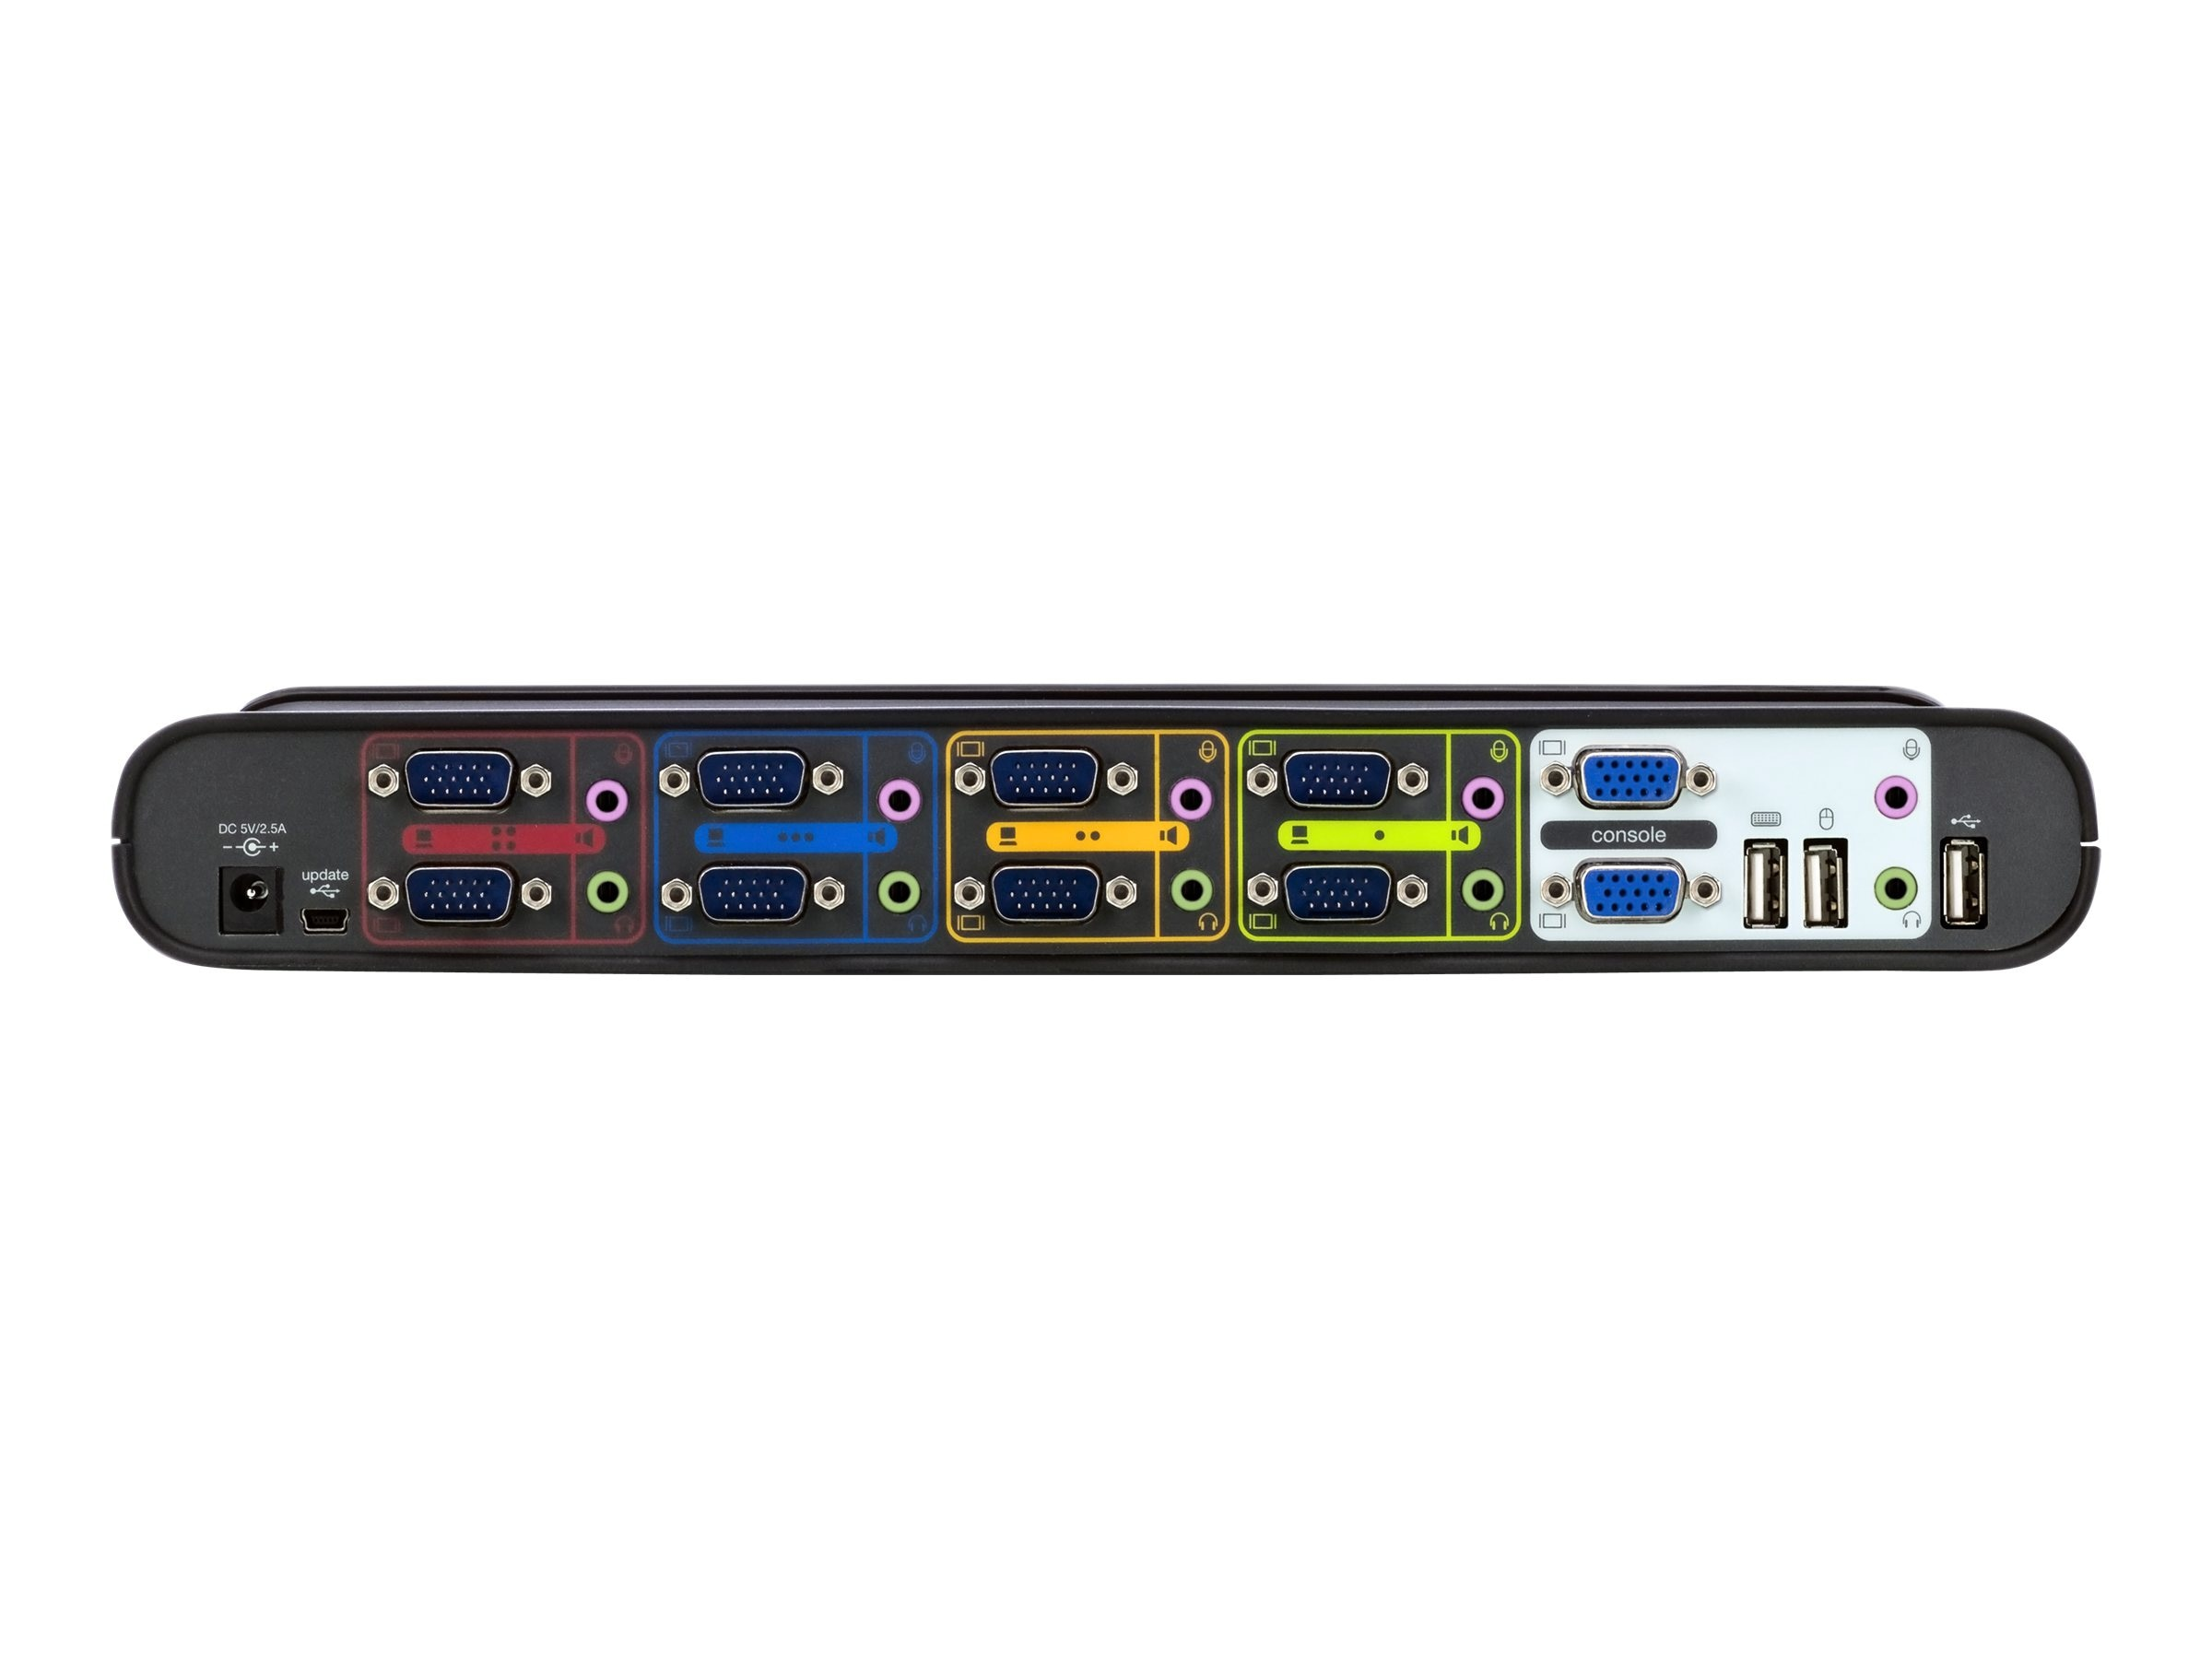 Belkin SOHO KVM Switch, Dual VGA and USB, 4-Port, F1DH104L, 10445628, KVM Switches